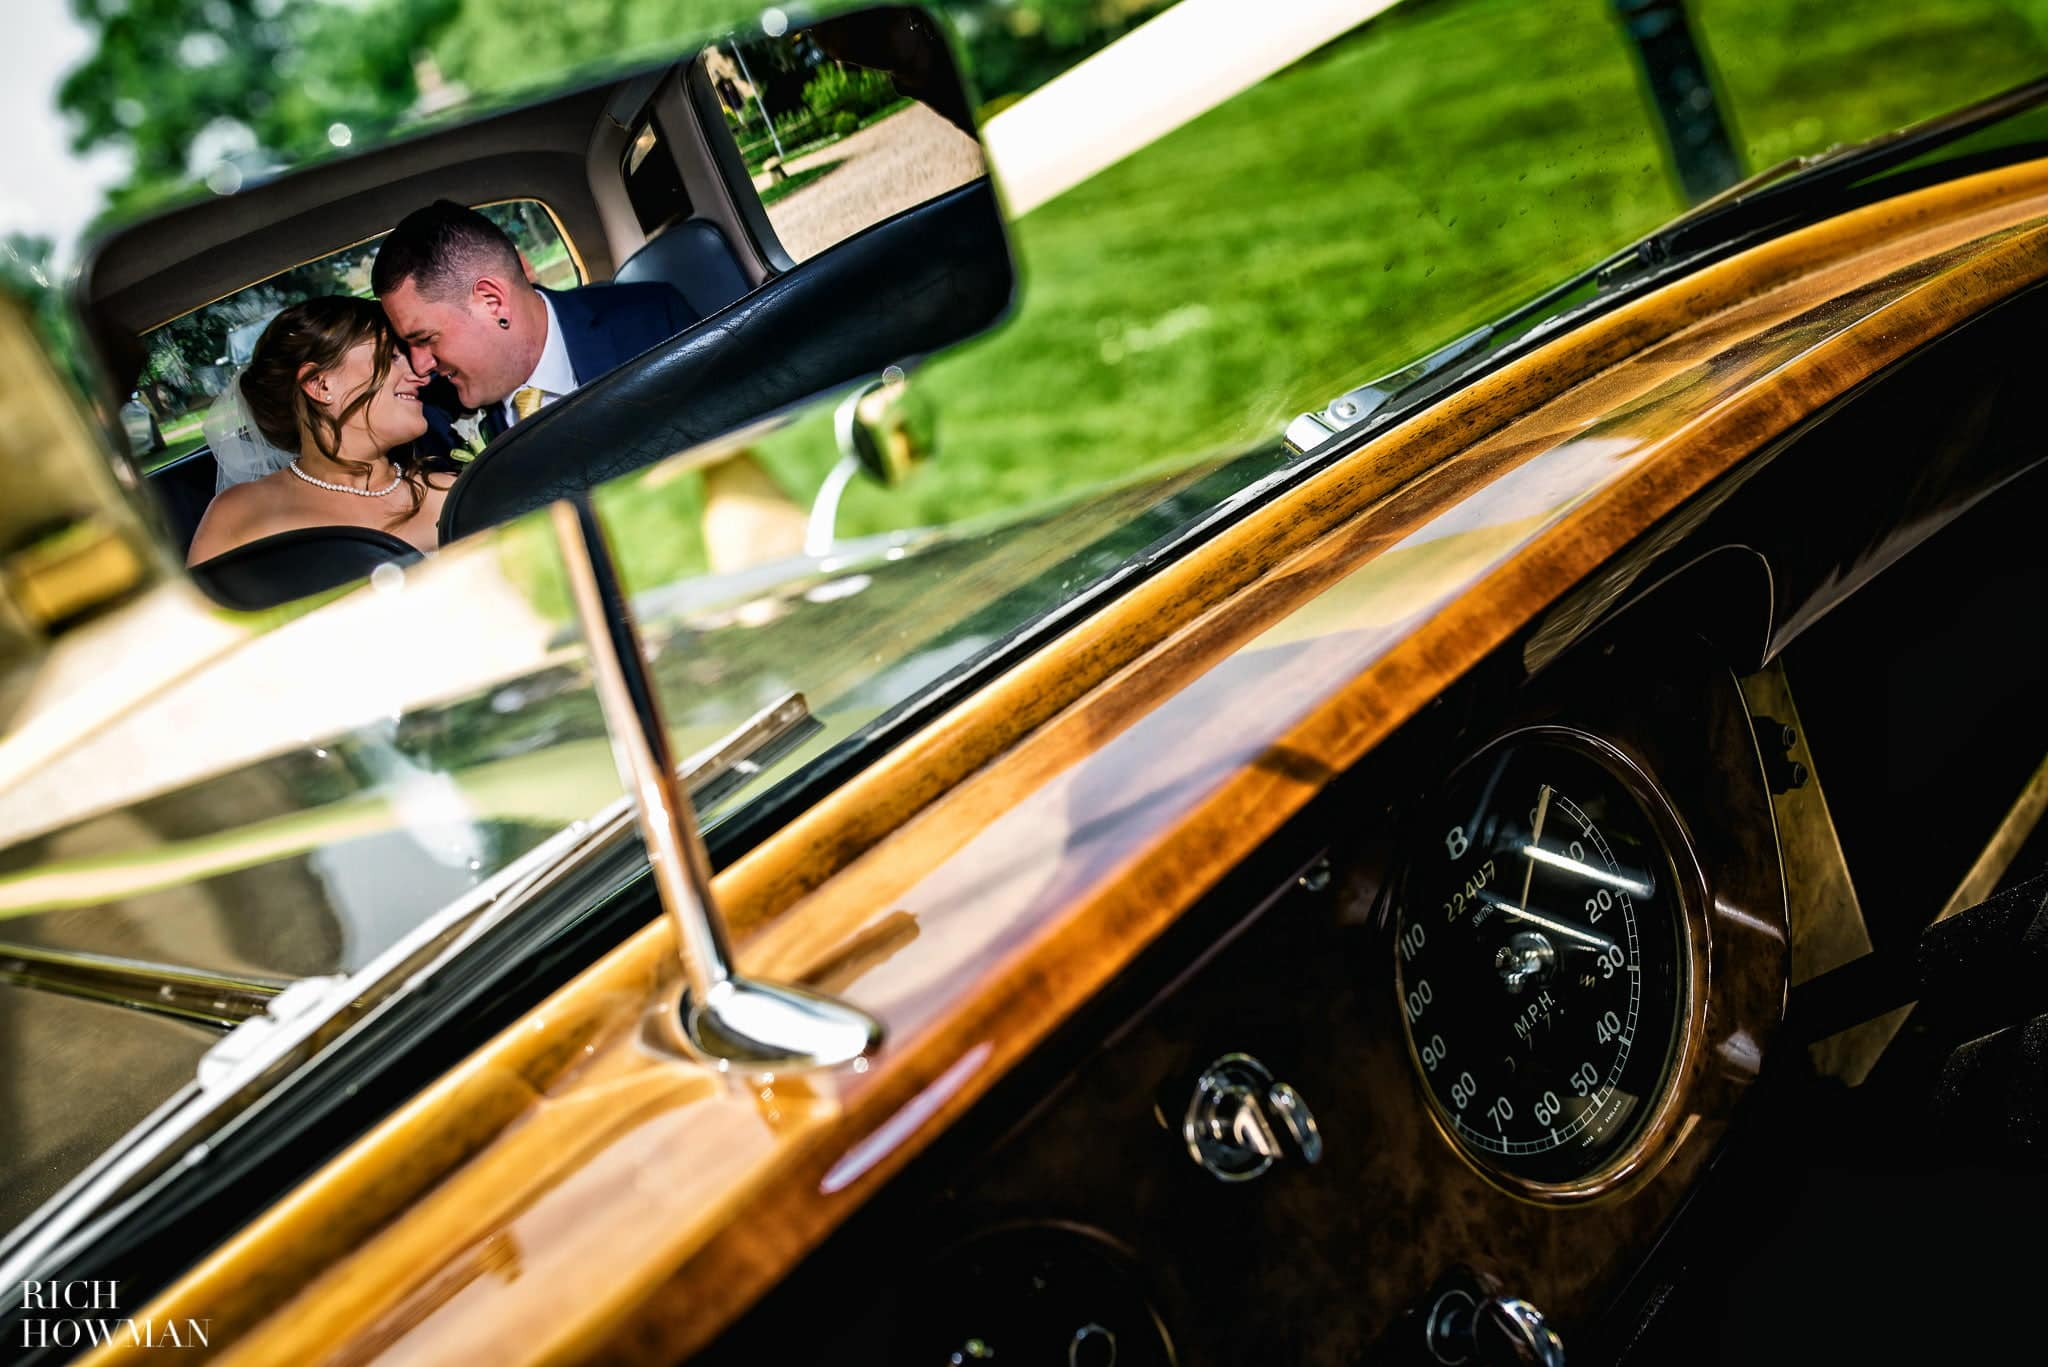 Newly married bride and groom creative portrait, reflected in the rear view mirror of a vintage Bentley